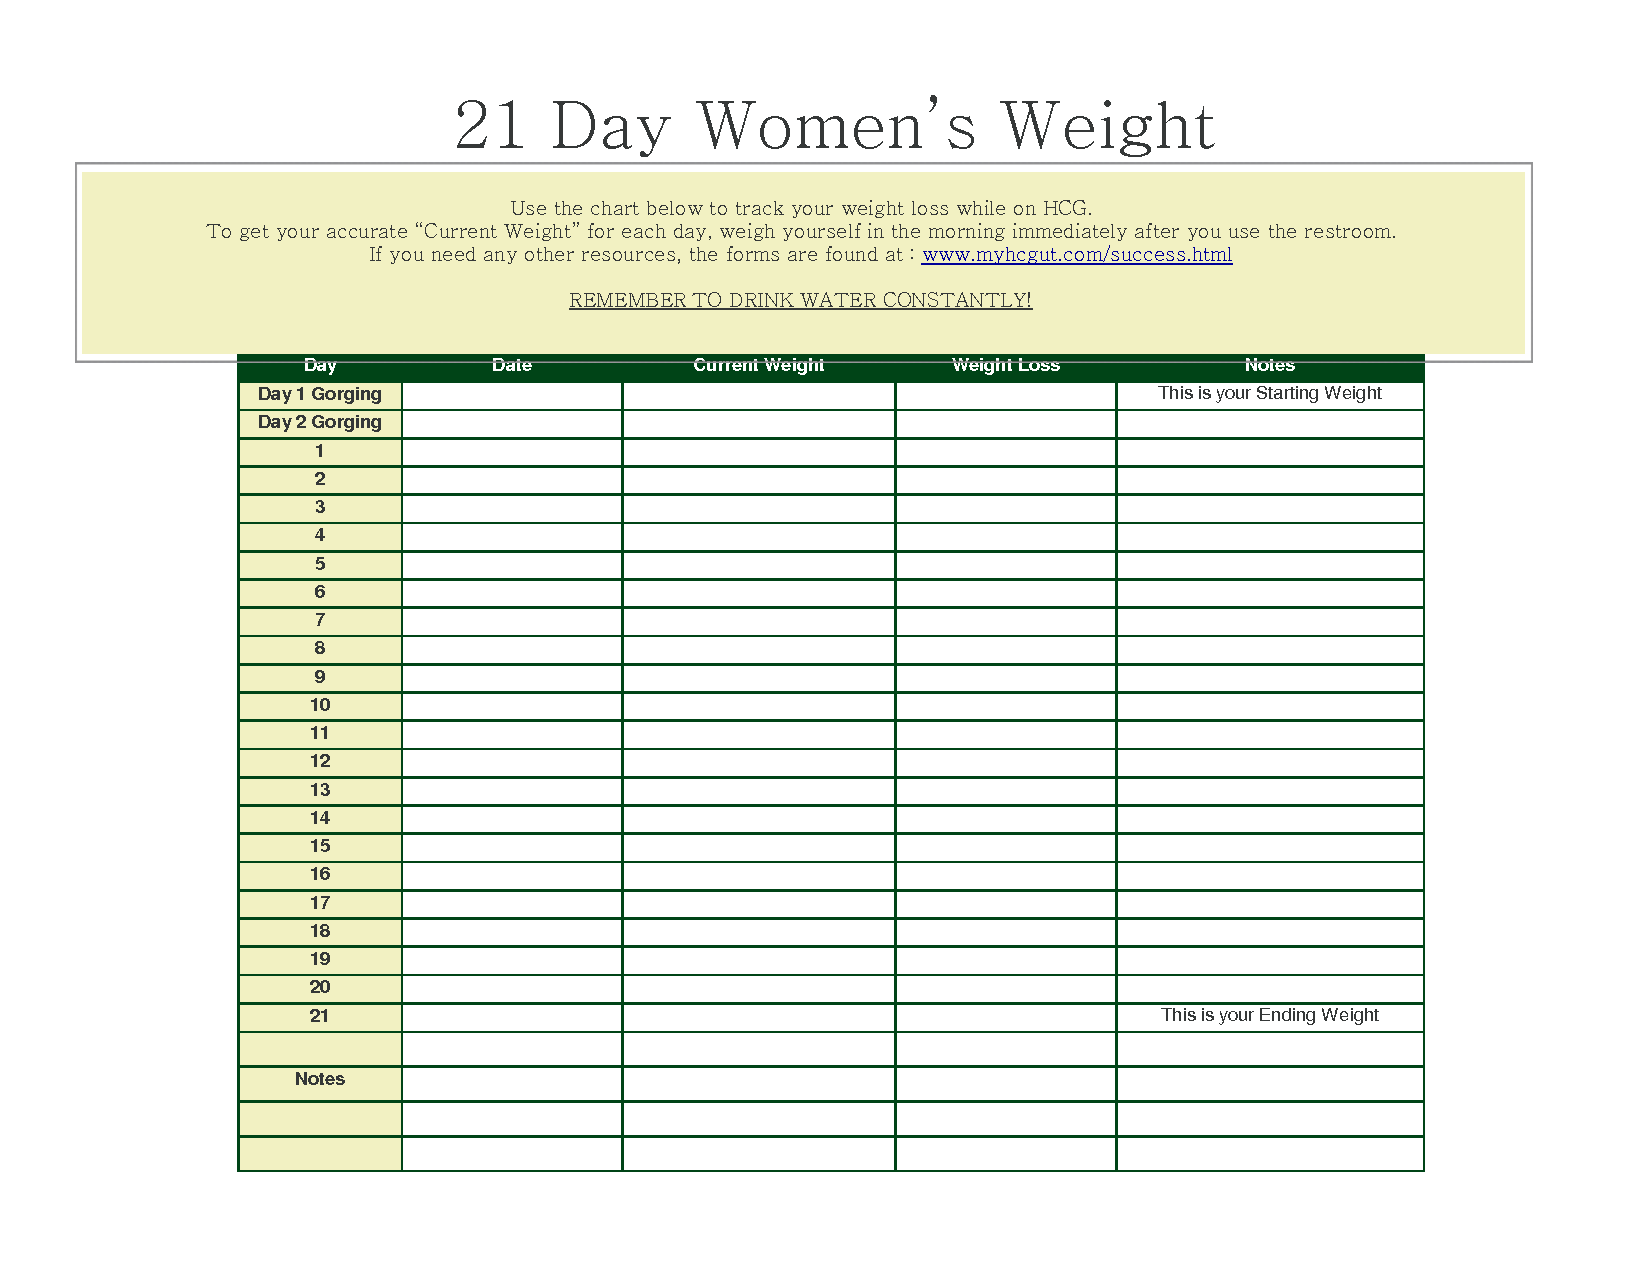 6 Best Images of HCG Weight Loss Chart Printable